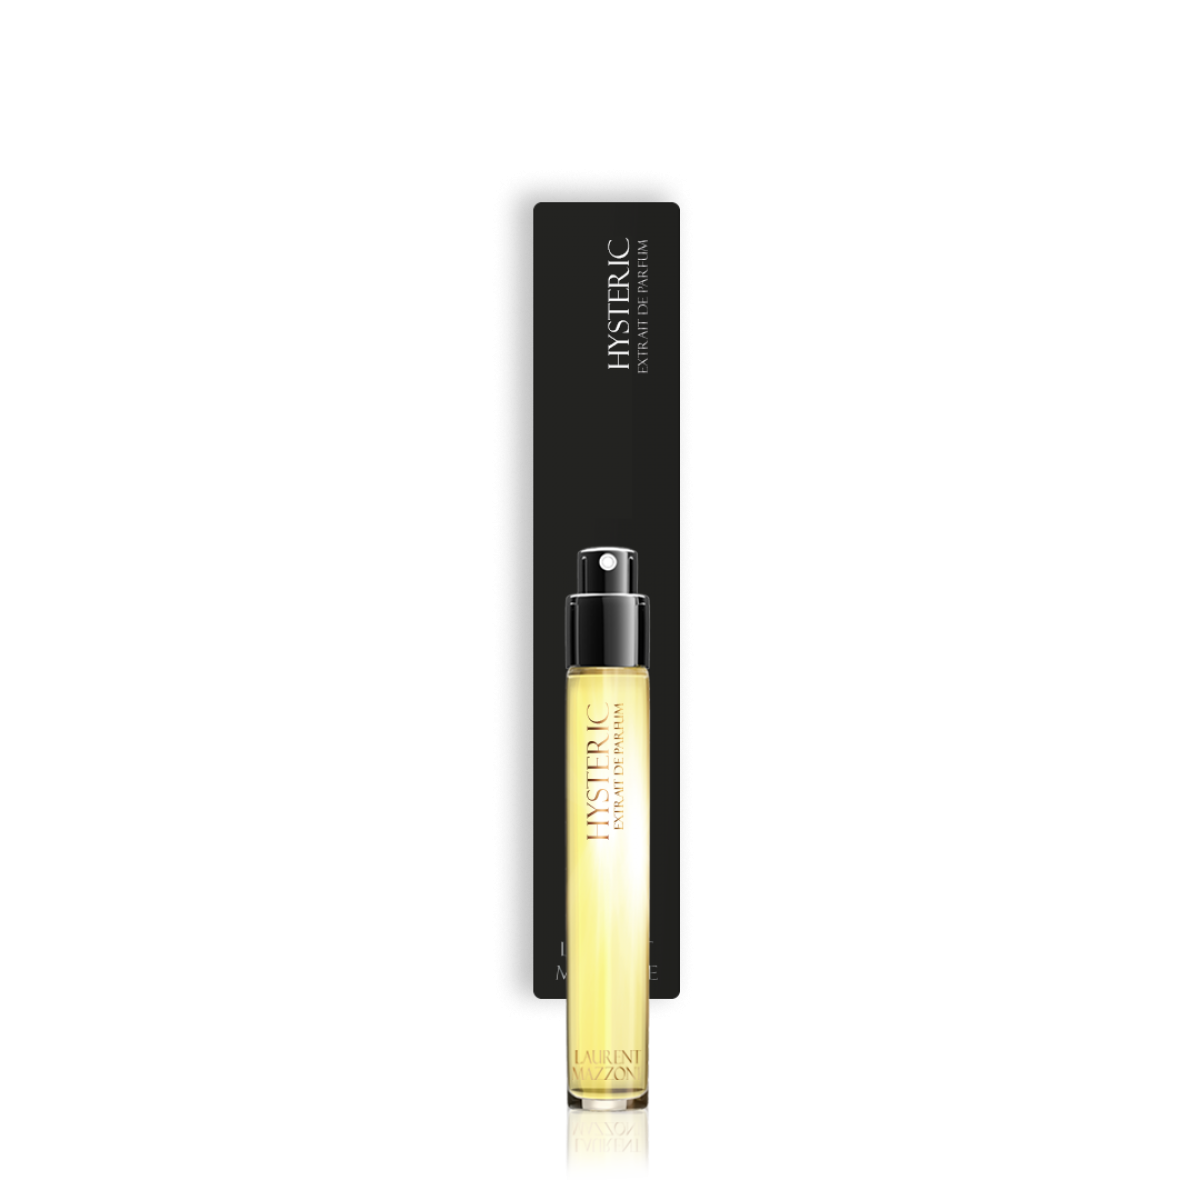 HYSTERIC - LM Parfums